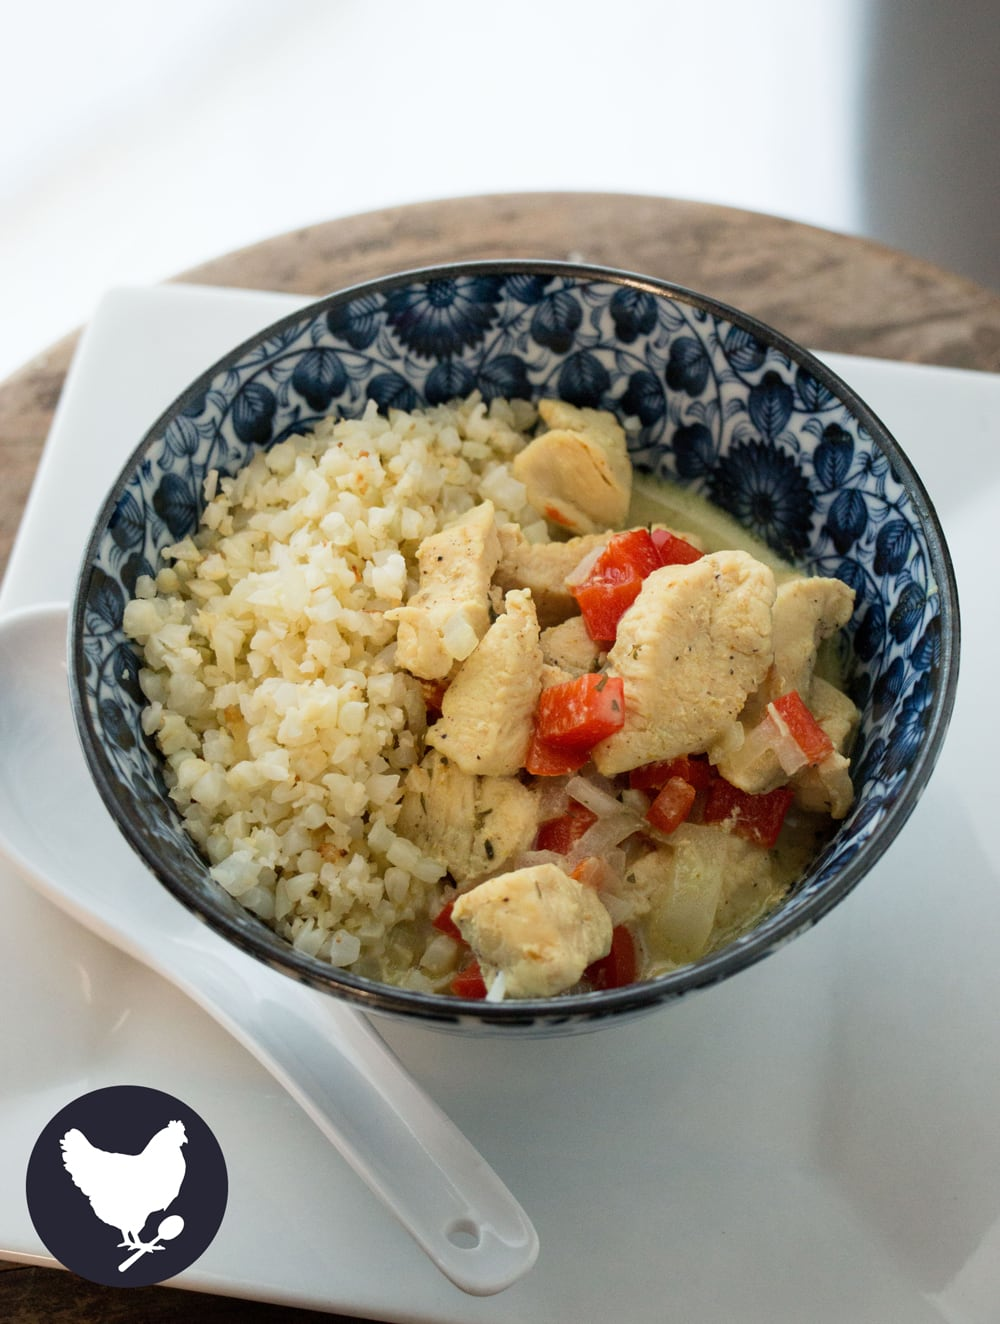 Curried Coconut Chicken is a ridiculously flavorful yet simple meal. It is prepared so quickly, that you can enjoy it any night of the week.